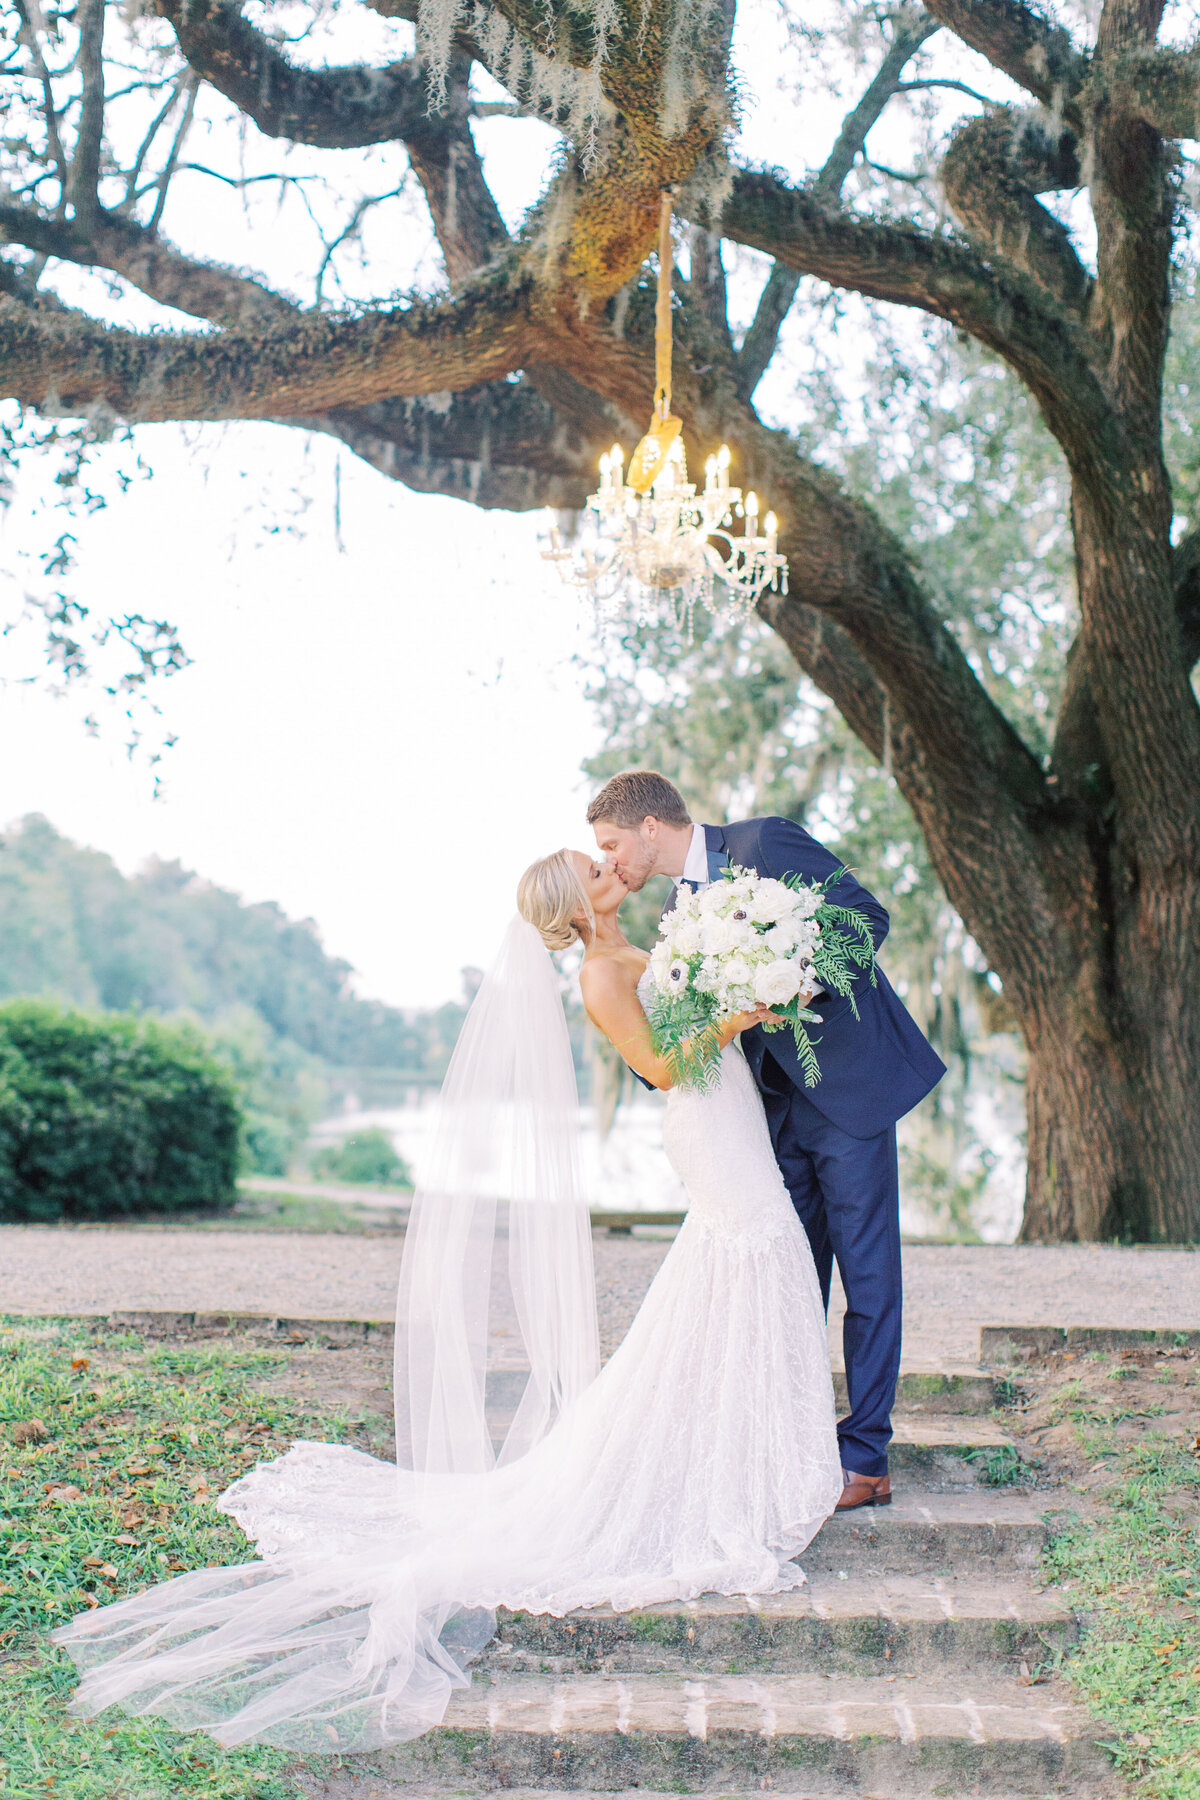 Melton_Wedding__Middleton_Place_Plantation_Charleston_South_Carolina_Jacksonville_Florida_Devon_Donnahoo_Photography__0765